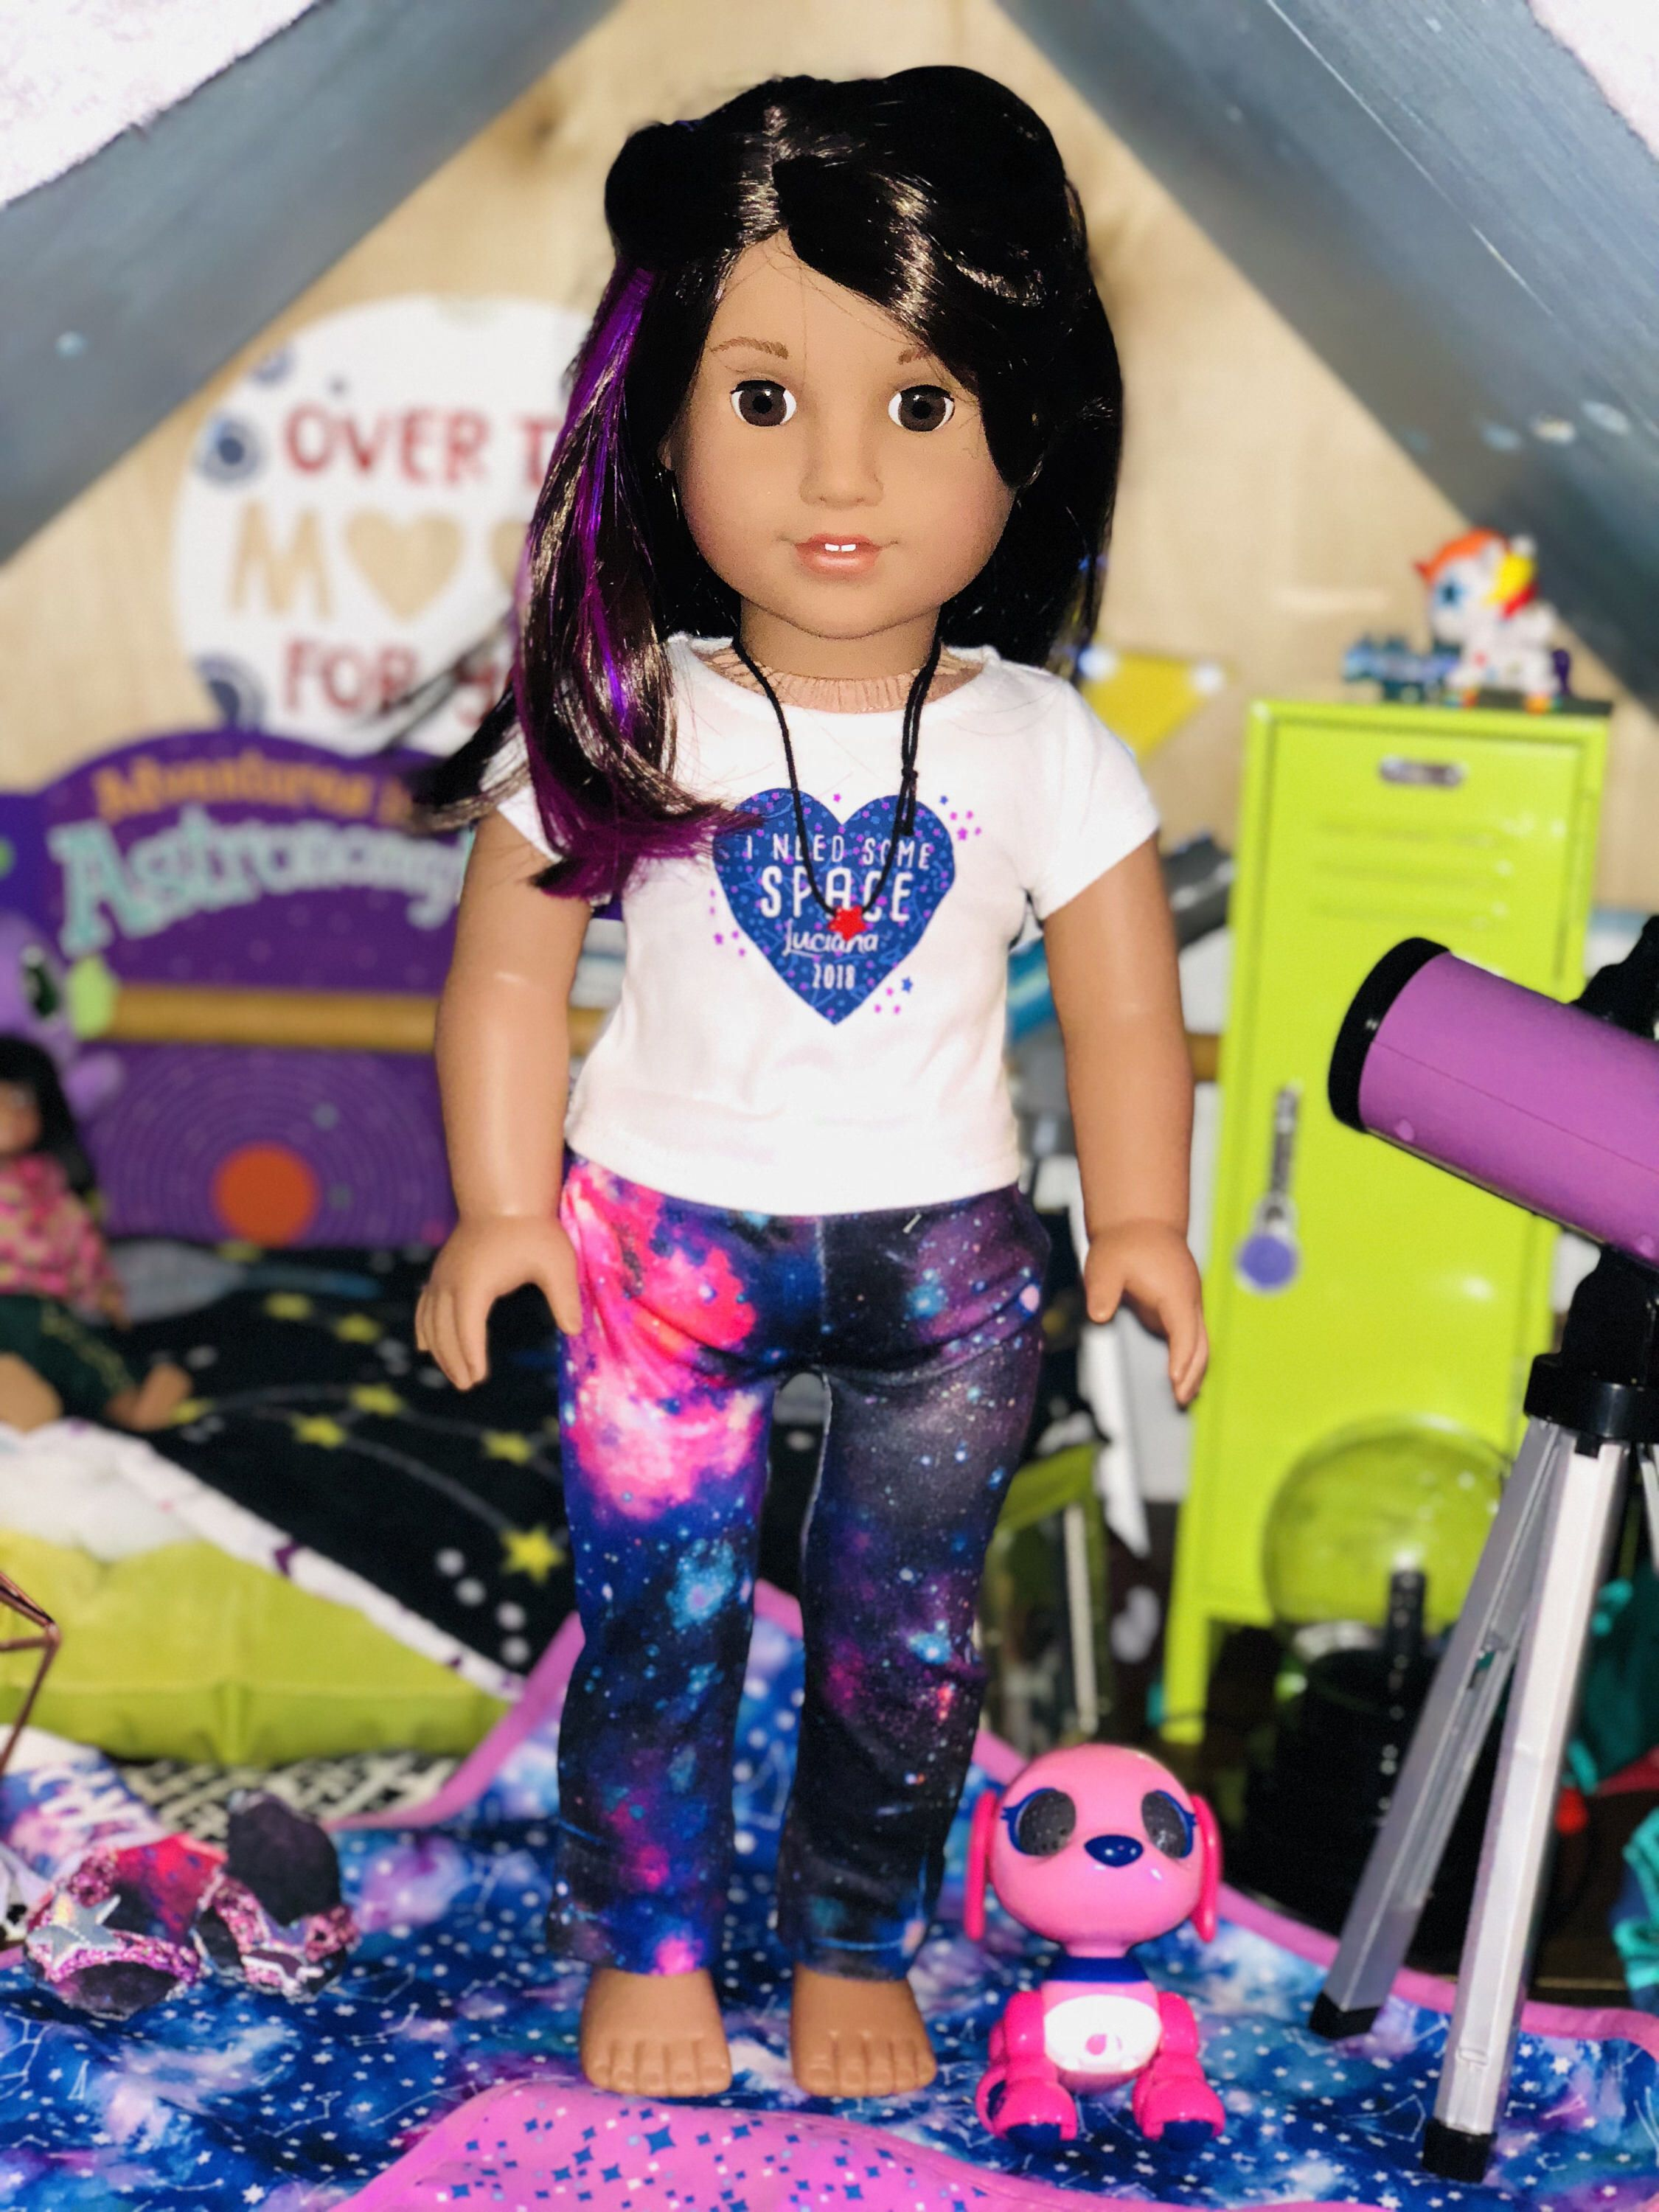 65fc26ede3f Luciana Vega Inspired Galaxy Knit Outerspace Legging Fits 18 Inch American  Girl Doll by MermaidsAndDolls on